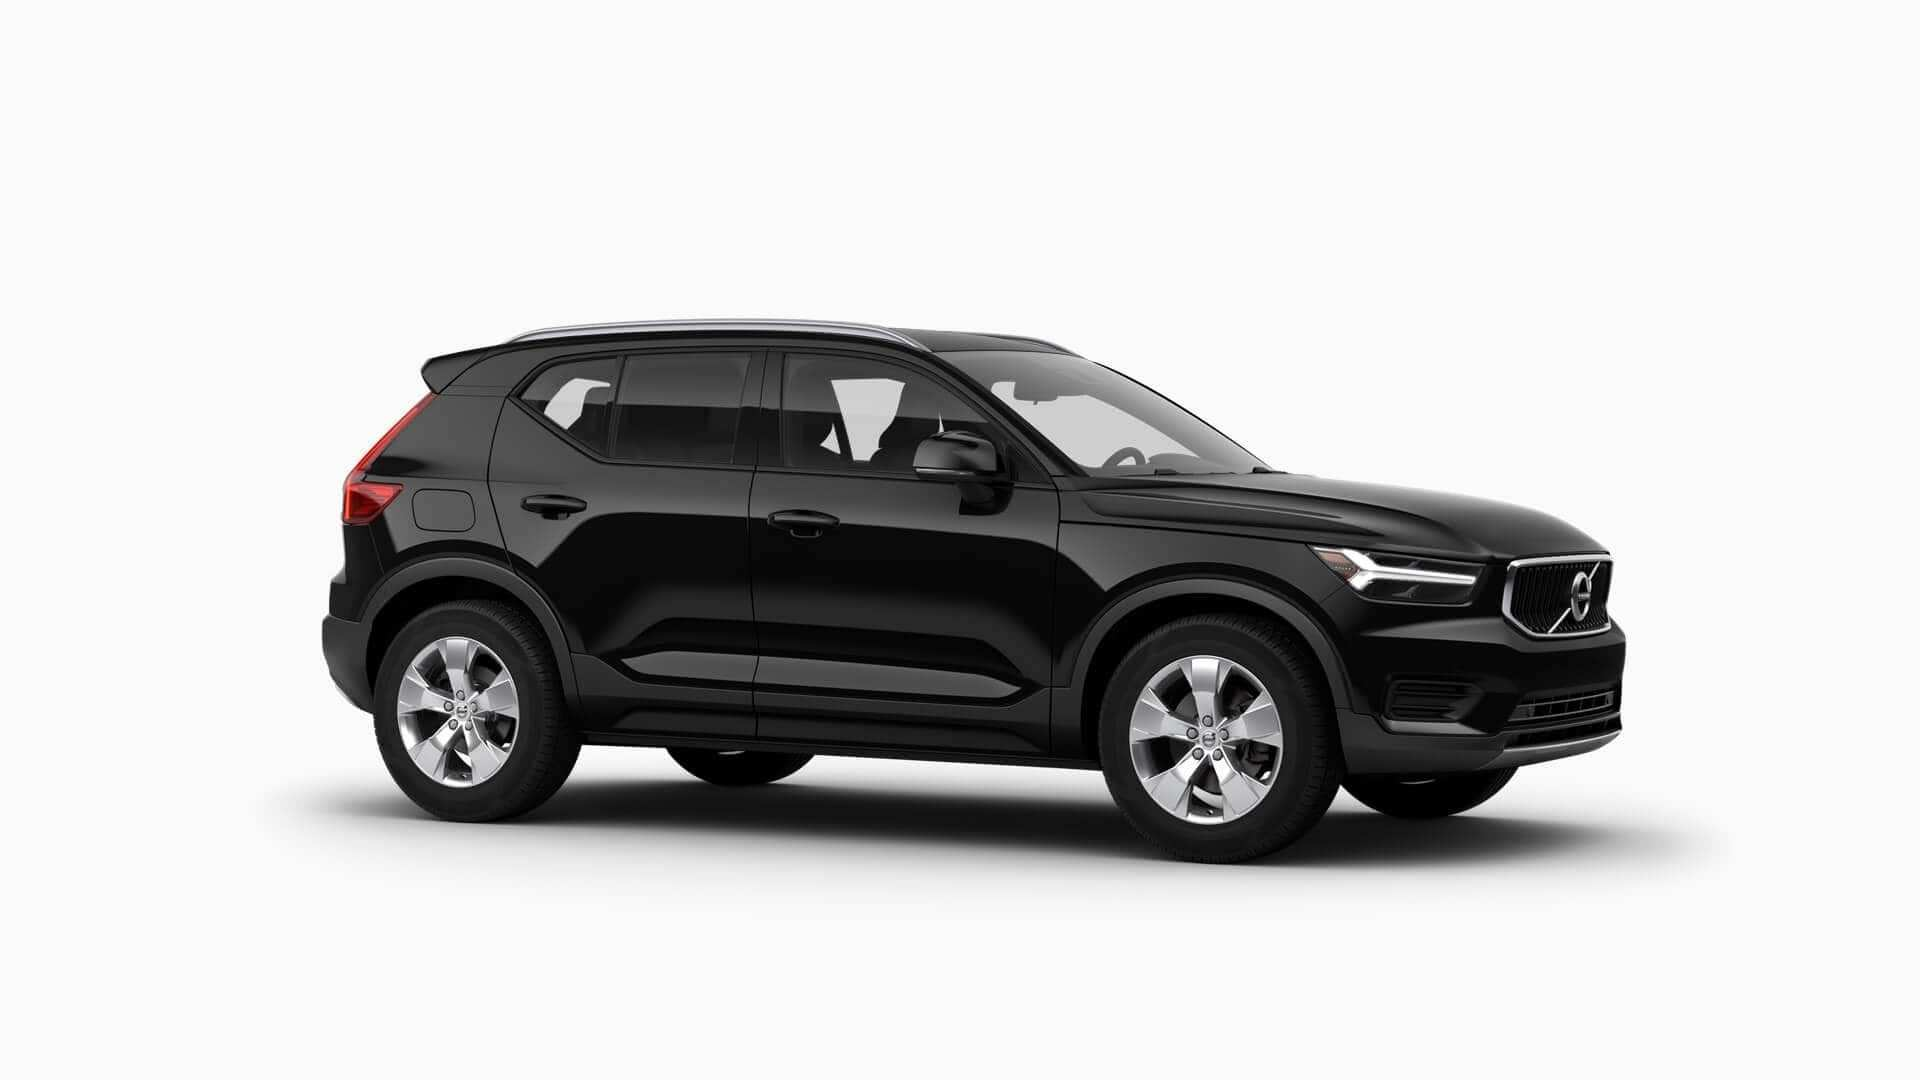 99 Concept of New 2019 Volvo Xc40 Lease Spesification Redesign and Concept for New 2019 Volvo Xc40 Lease Spesification